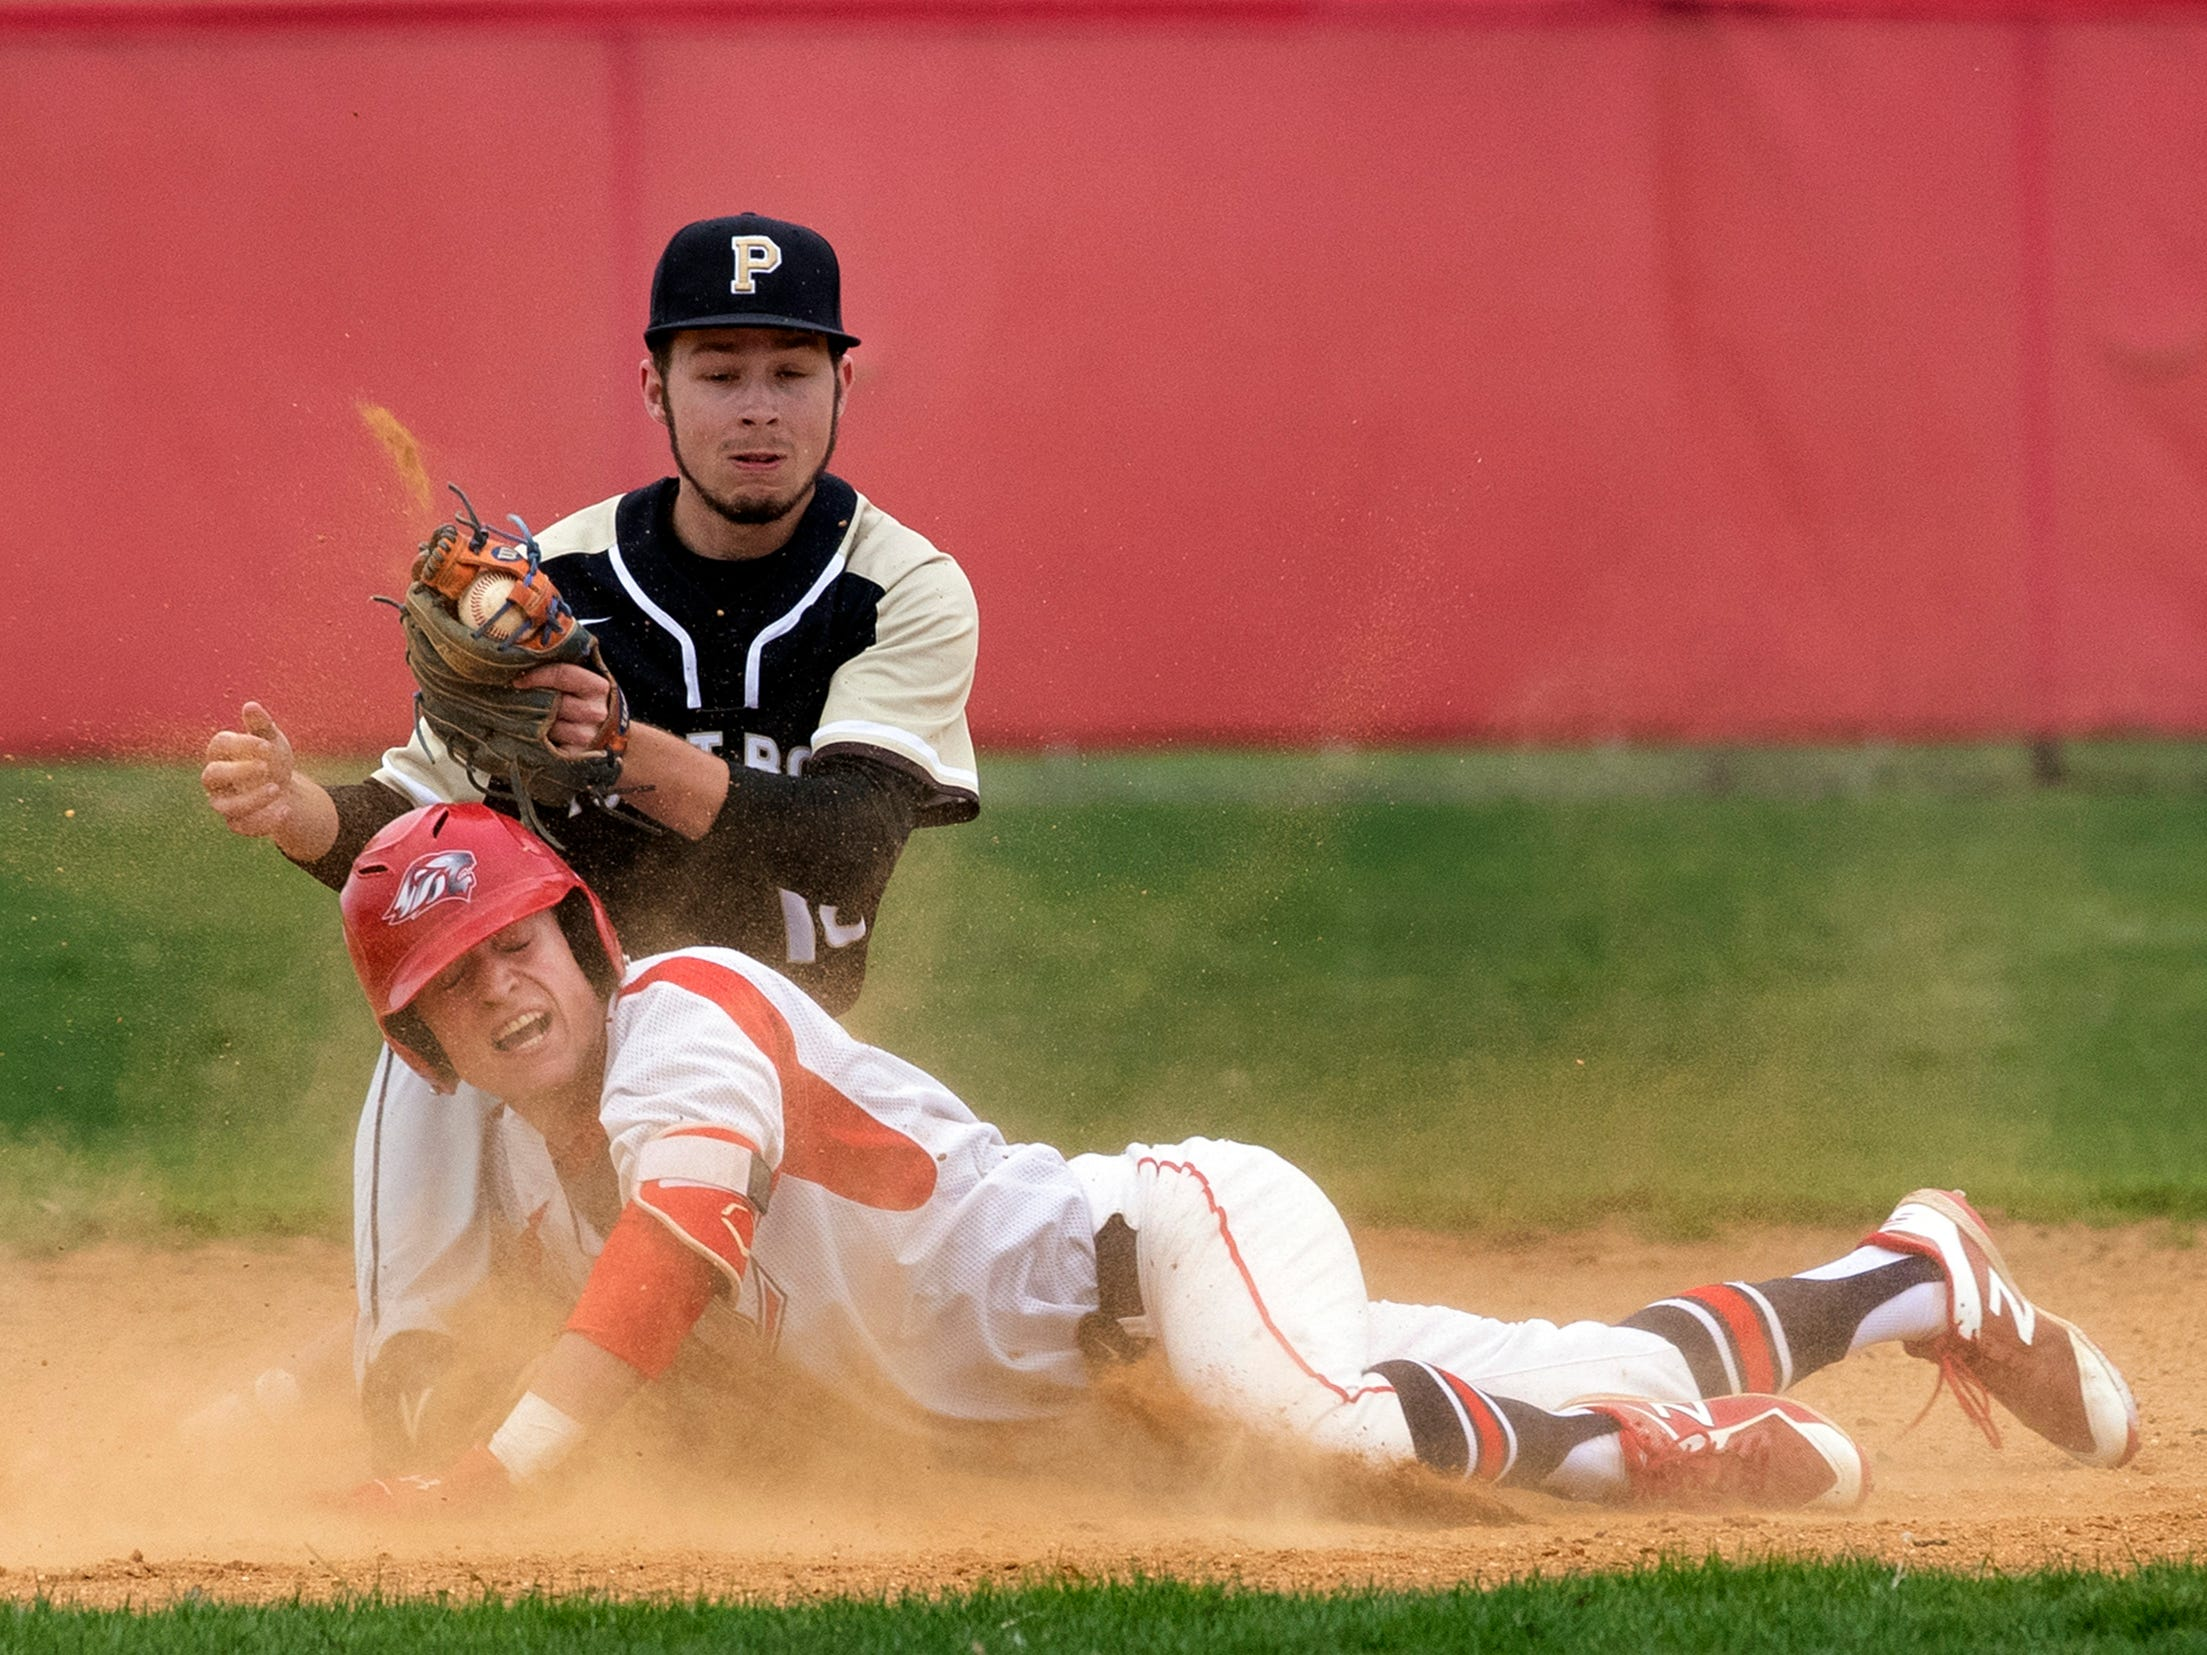 Point Pleasant Boro's Nicholas Zbikowski tags out Liberty's  Connor Keenan for a first inning out. Point Pleasant Boro Baseball vs Jackson Liberty in Jackson, NJ on May 1, 2019.